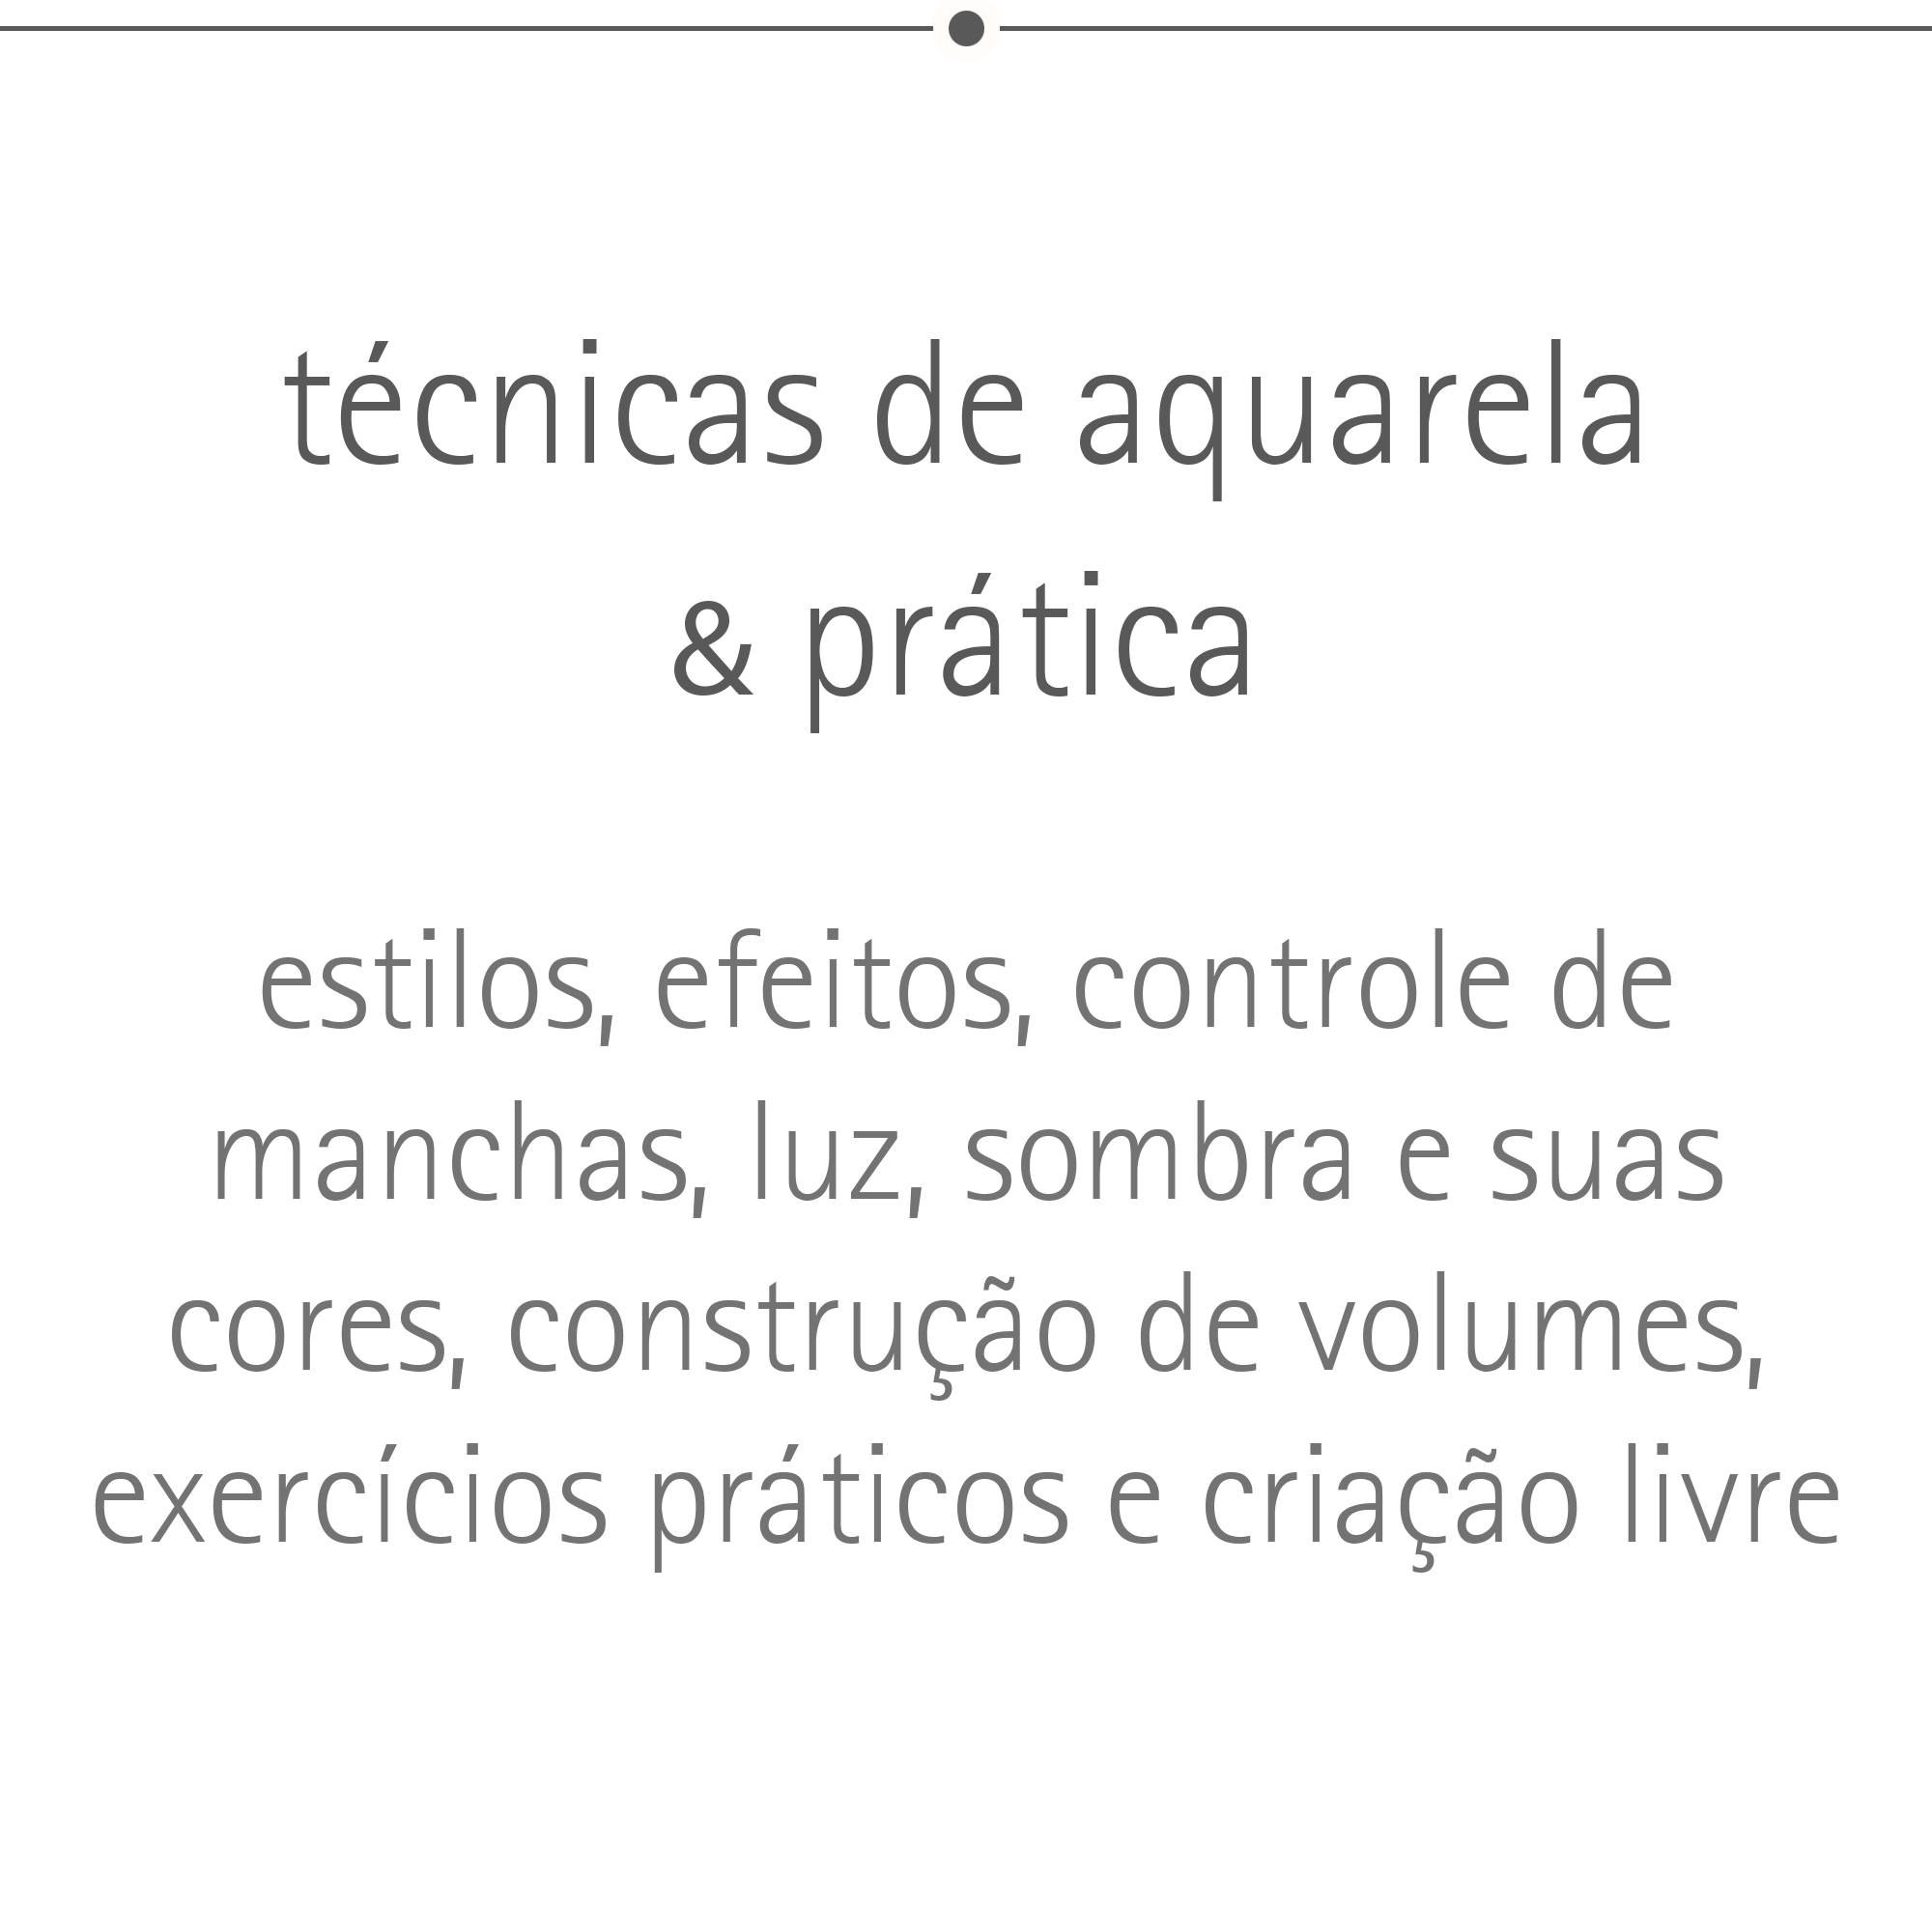 texto 3.png